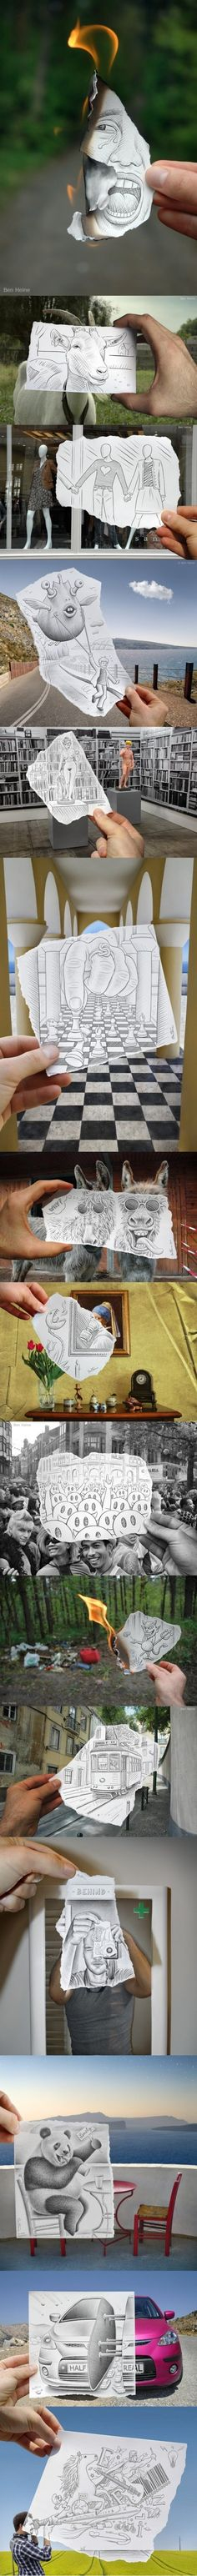 COOL Drawings